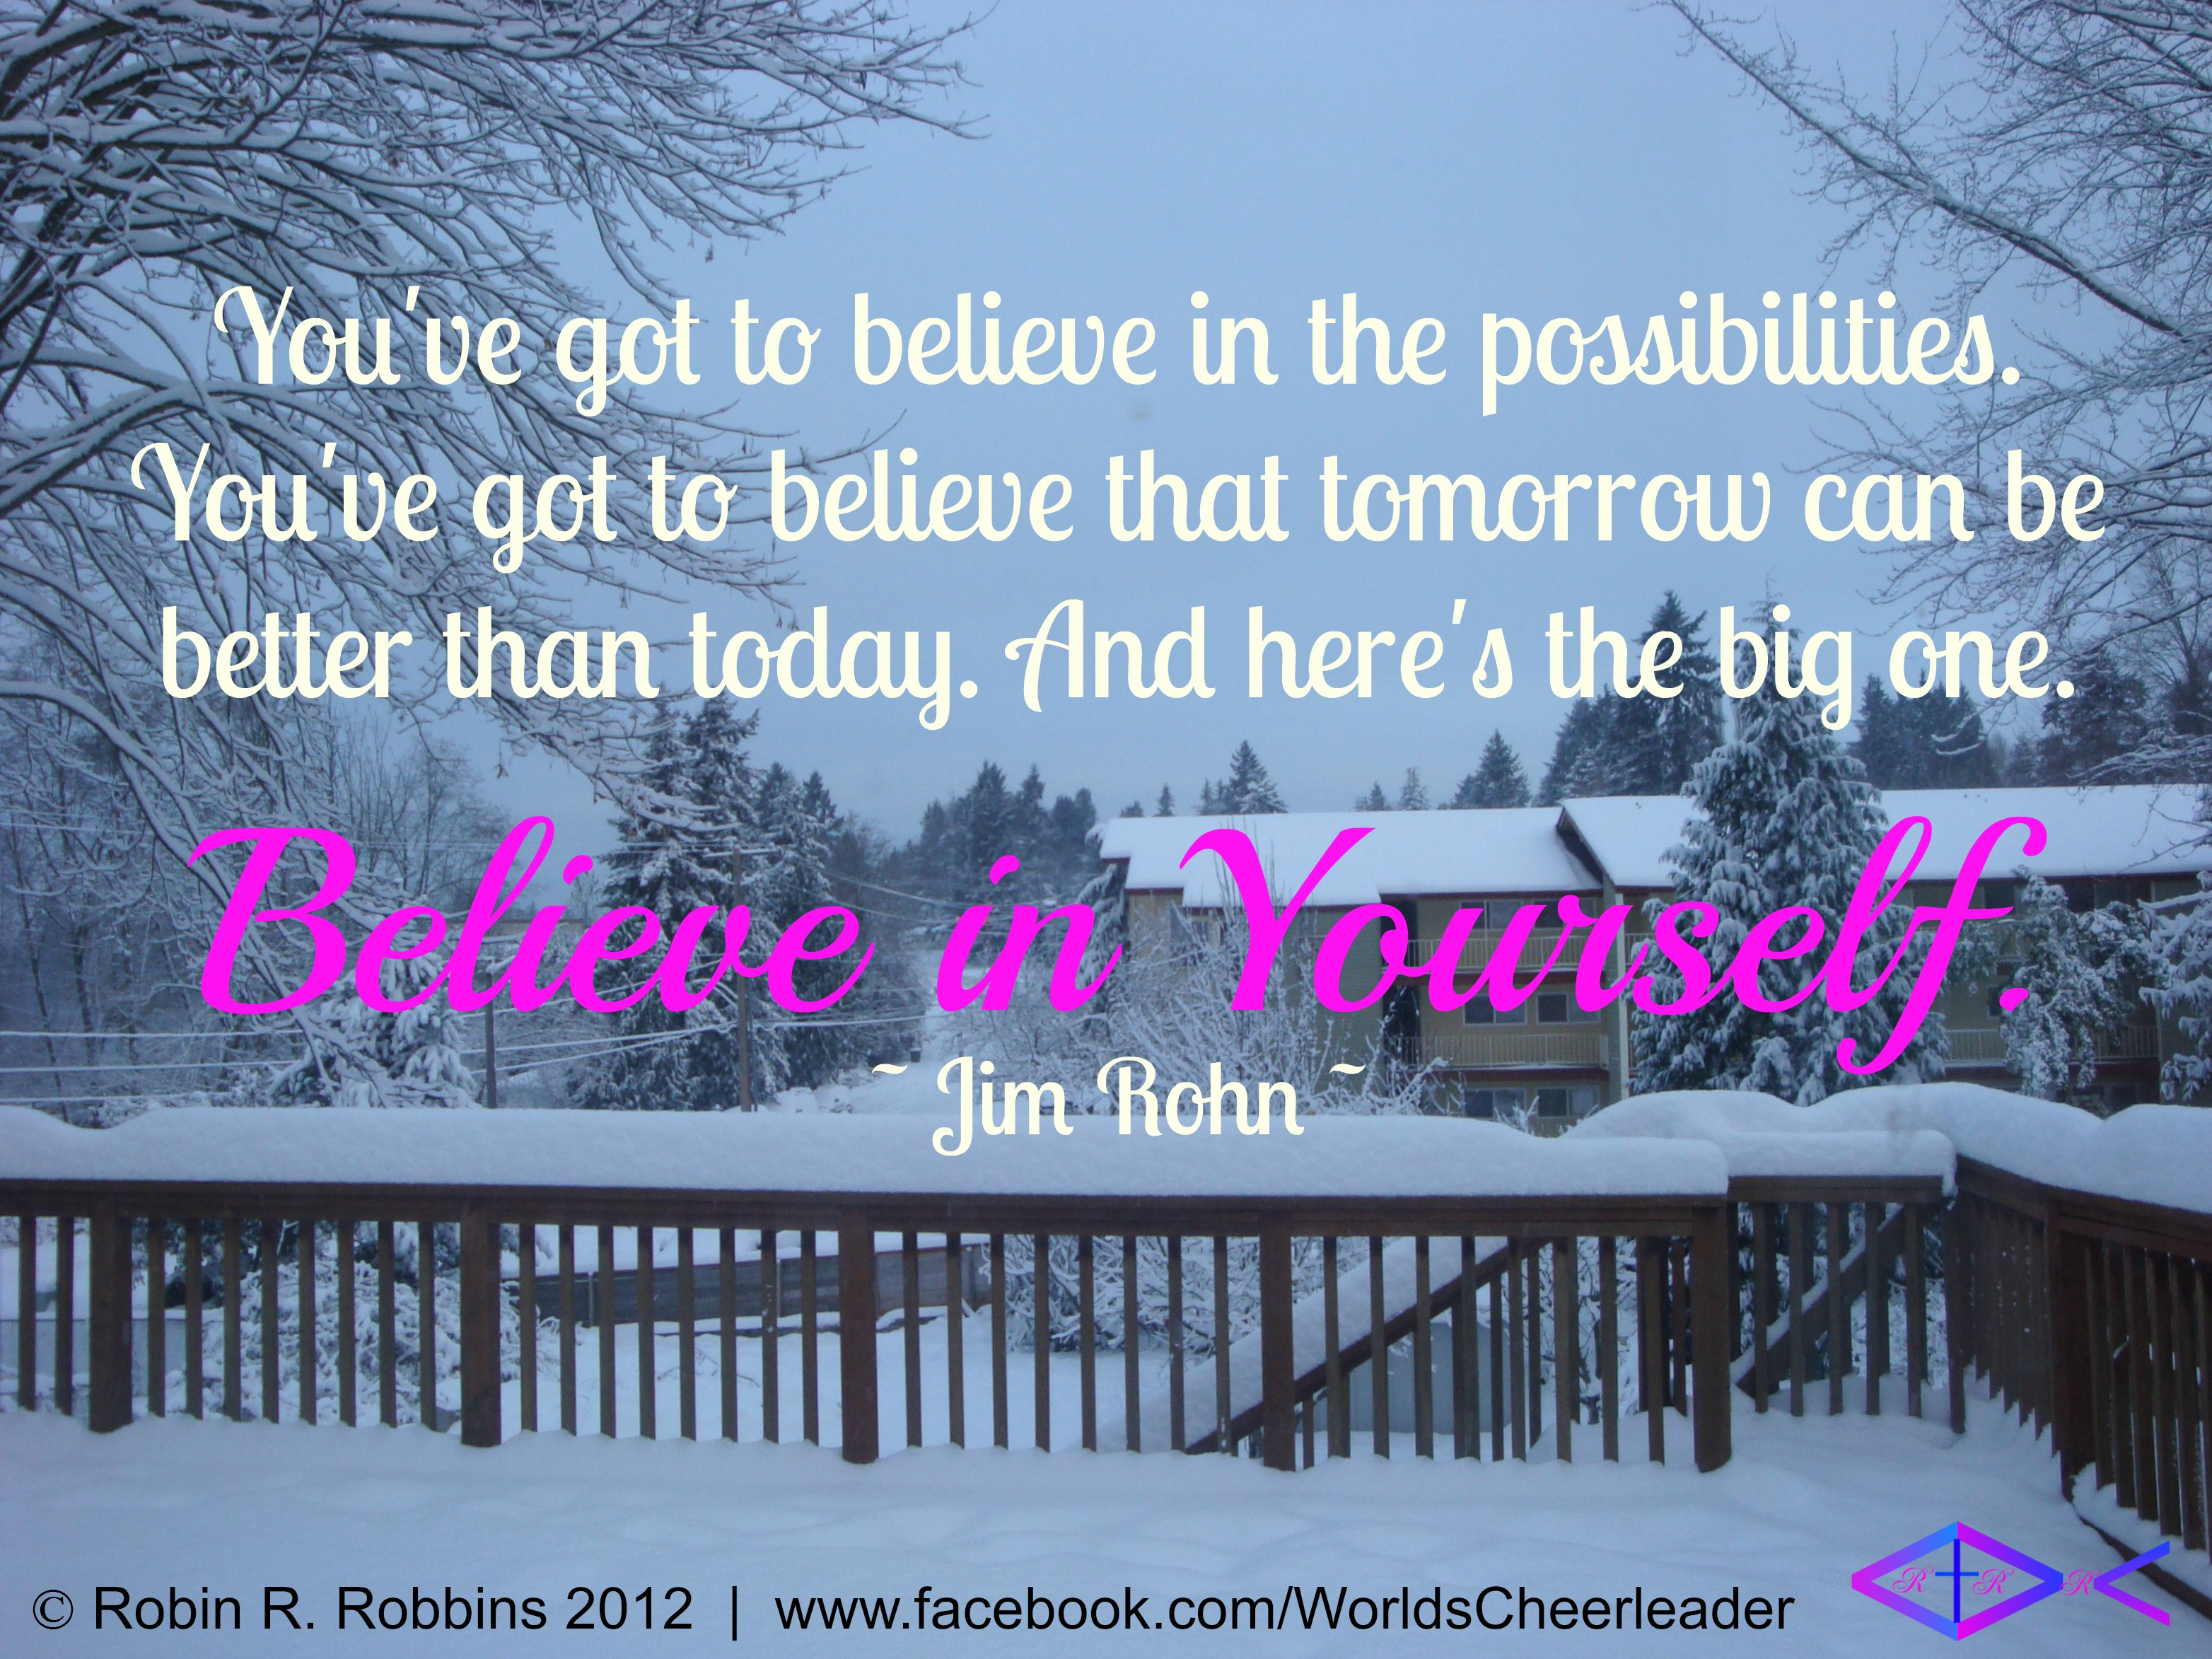 You've got to believe in the possibilities. You've got to believe that tomorrow can be better than today. And here's the big one. Believe in yourself. Jim Rohn